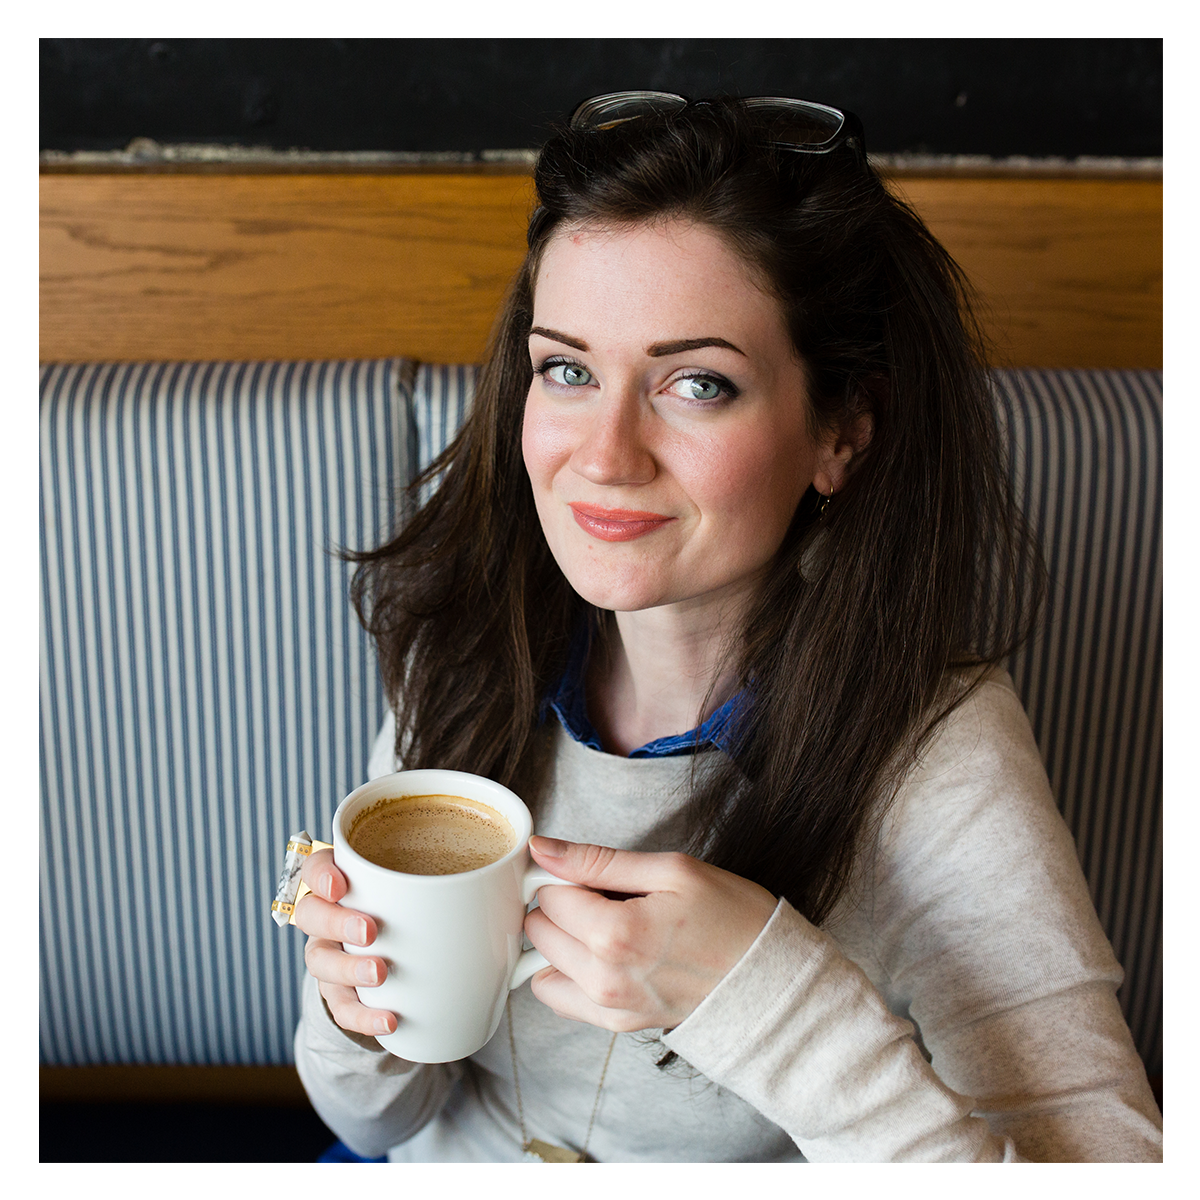 Hello! My name is Alexis. - Coffee lover, day dreamer, foodie, and creative. Currently working and living in New Hampshire, I'm an eclectic mix of forward-looking and completely old-fashioned.